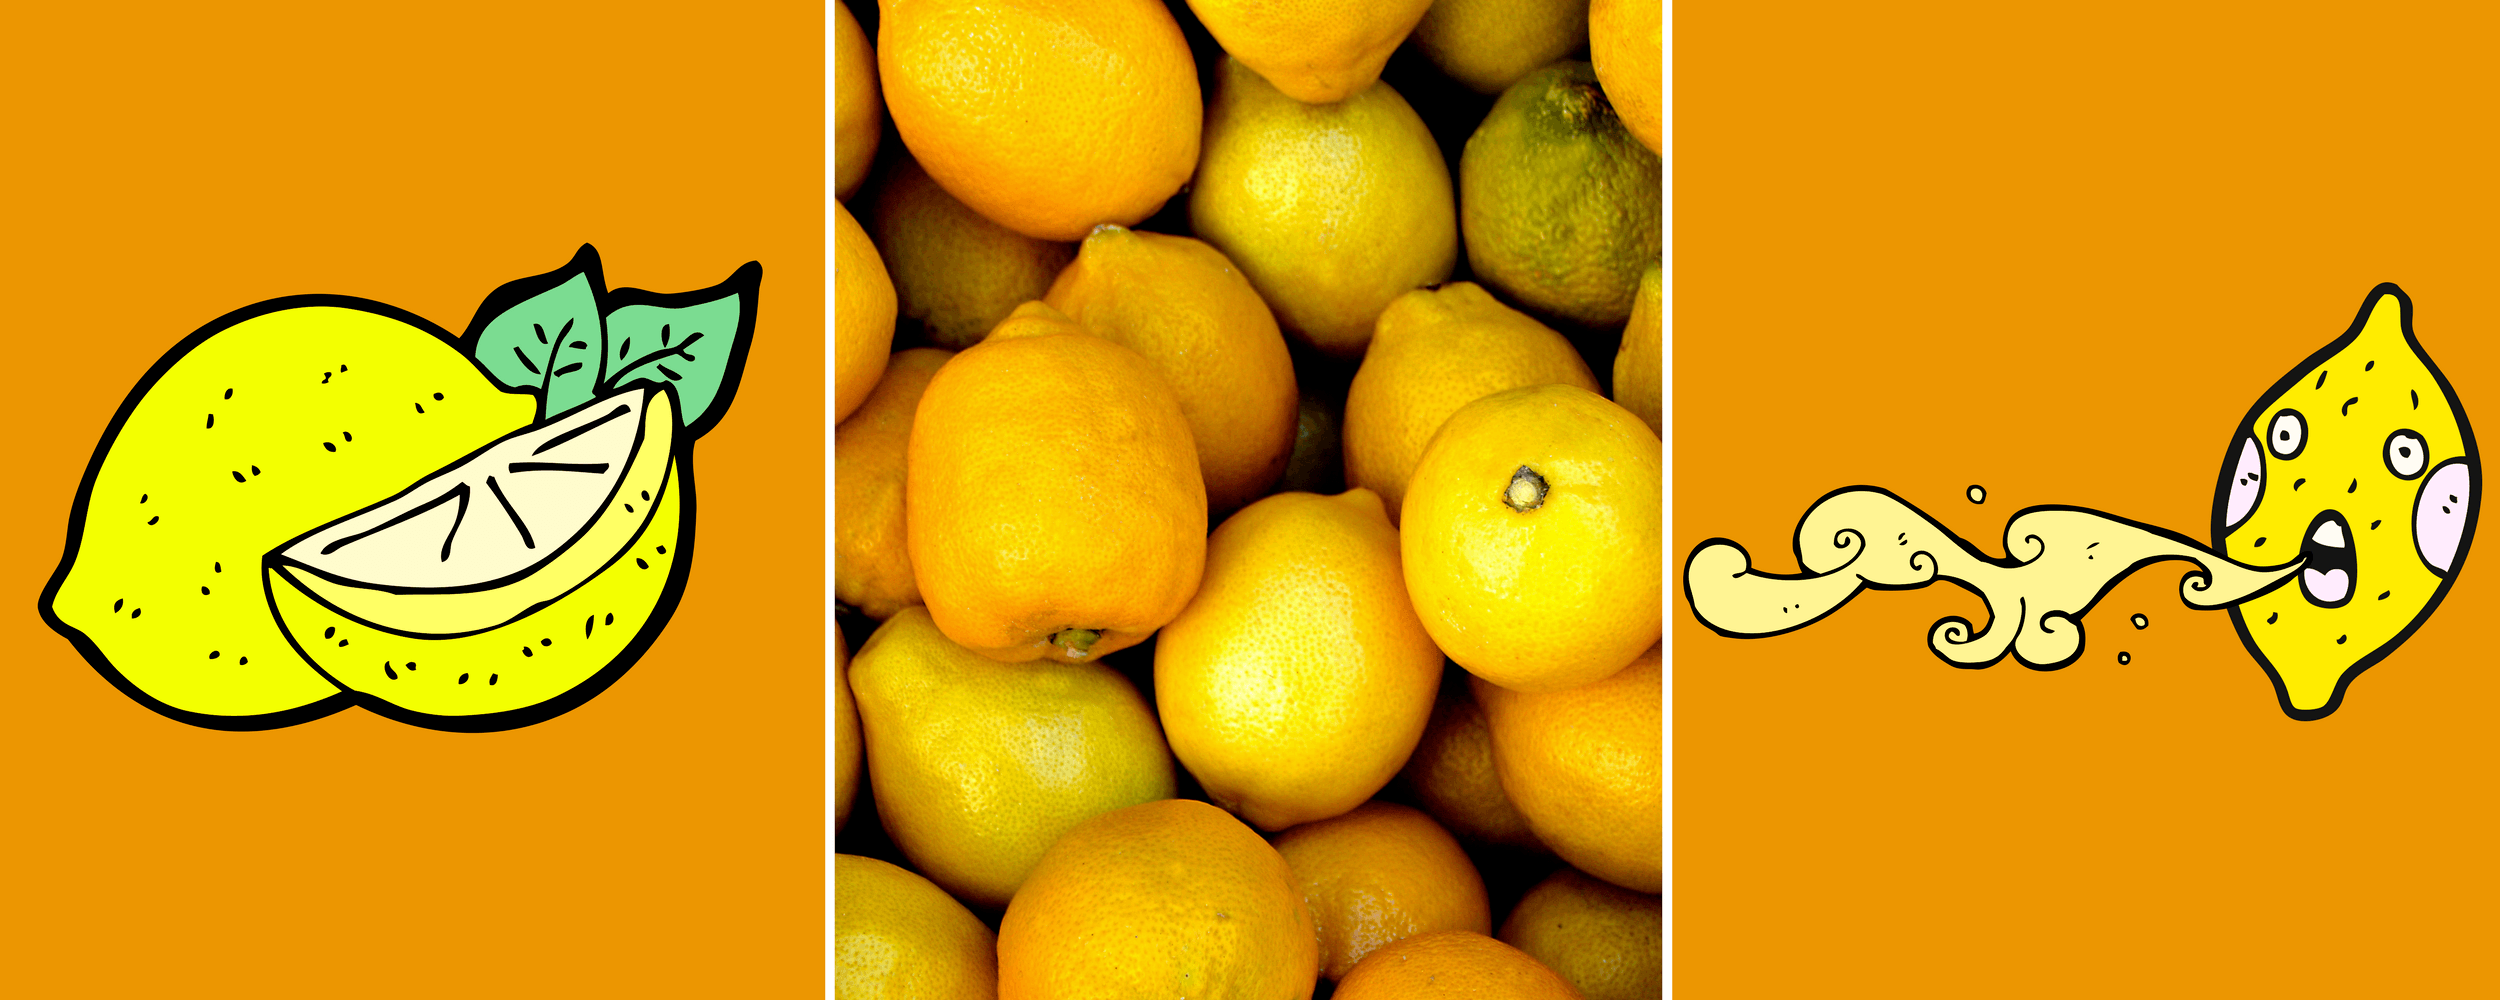 Happy birthday marketing lemons from LongHorn